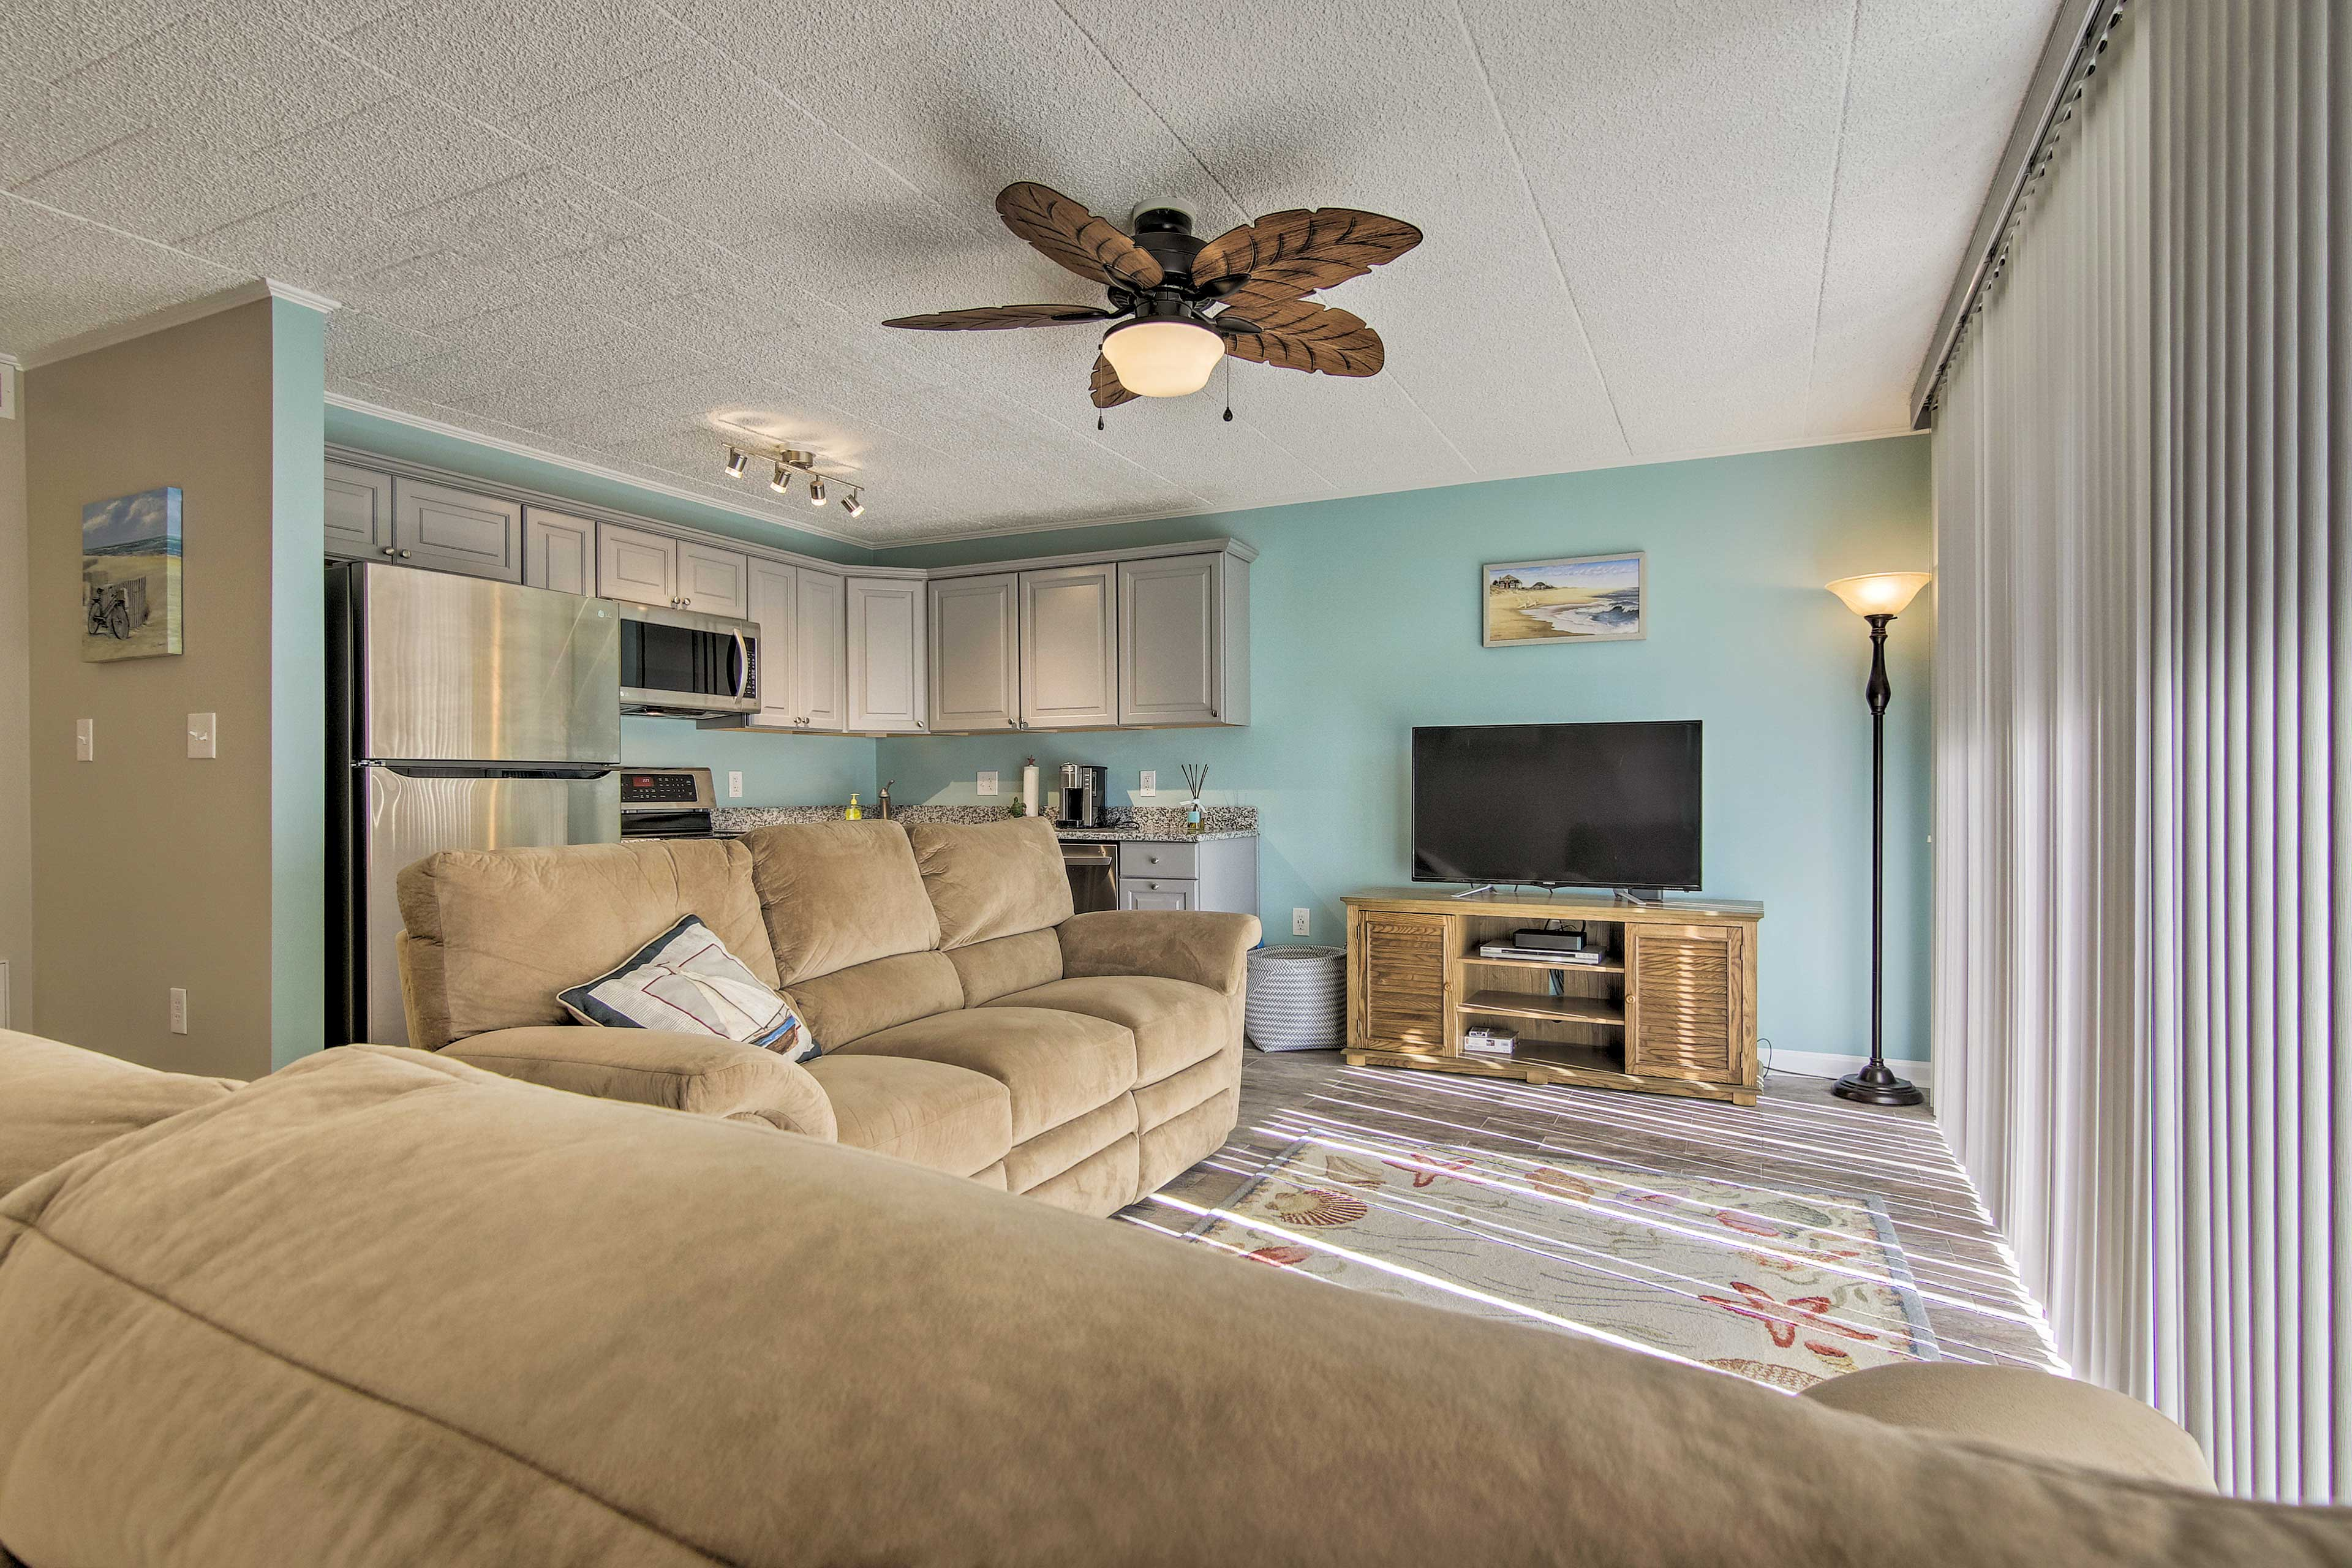 The unit features 2 bedrooms, 2 bathrooms, and room for 4 guests.